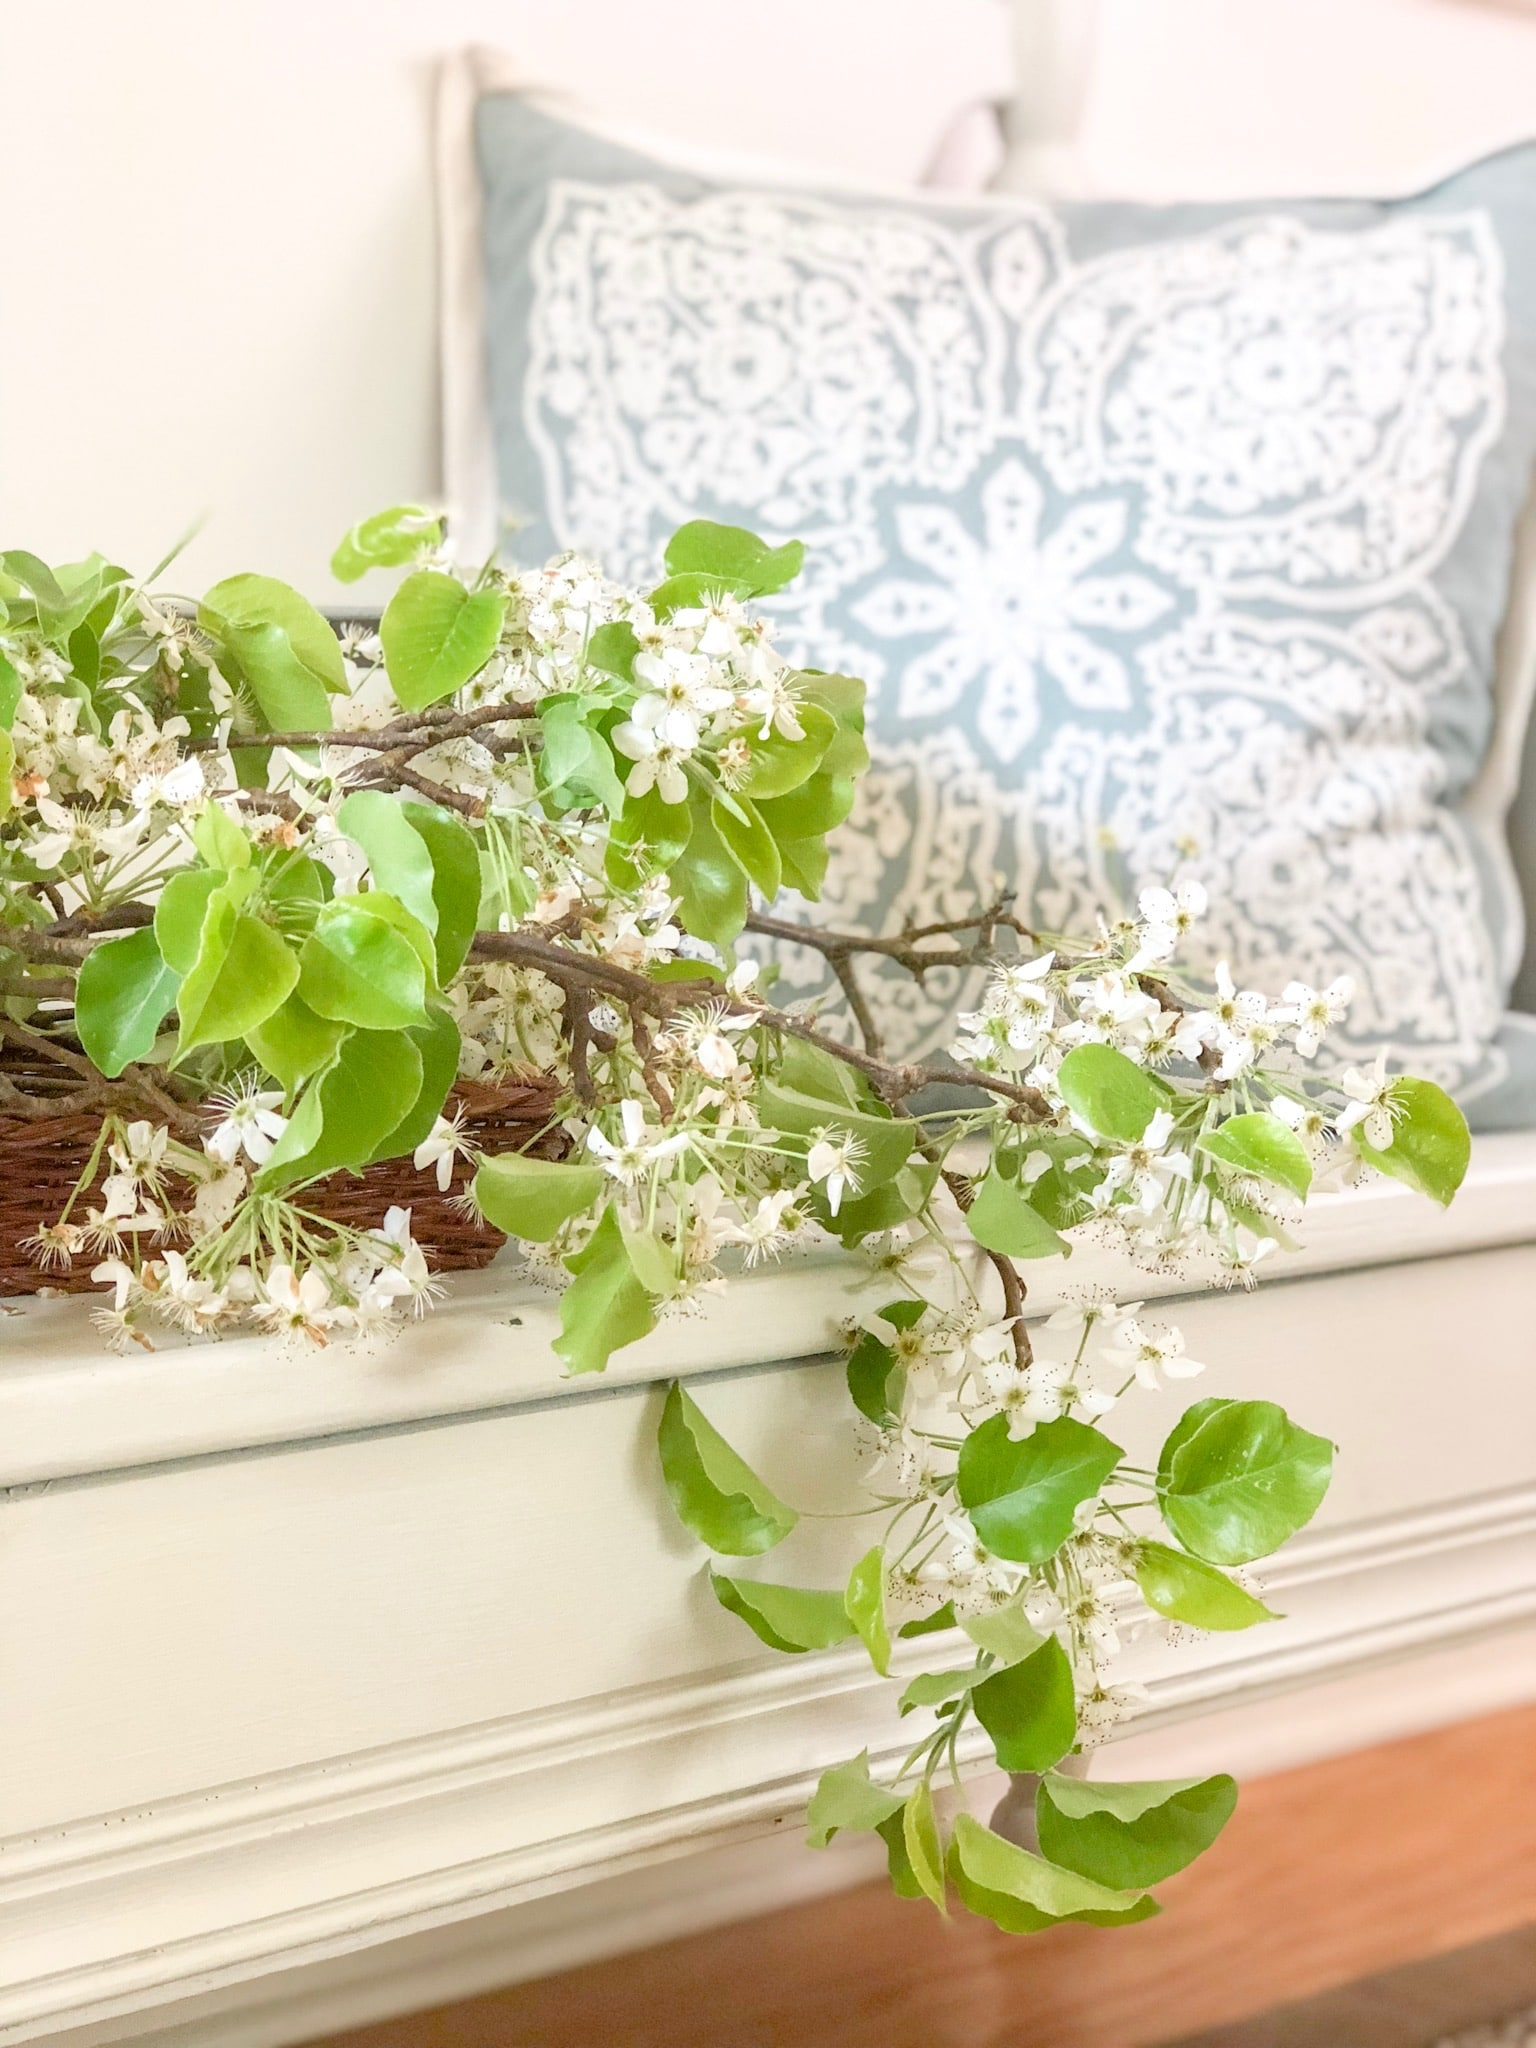 spring decor that will brighten